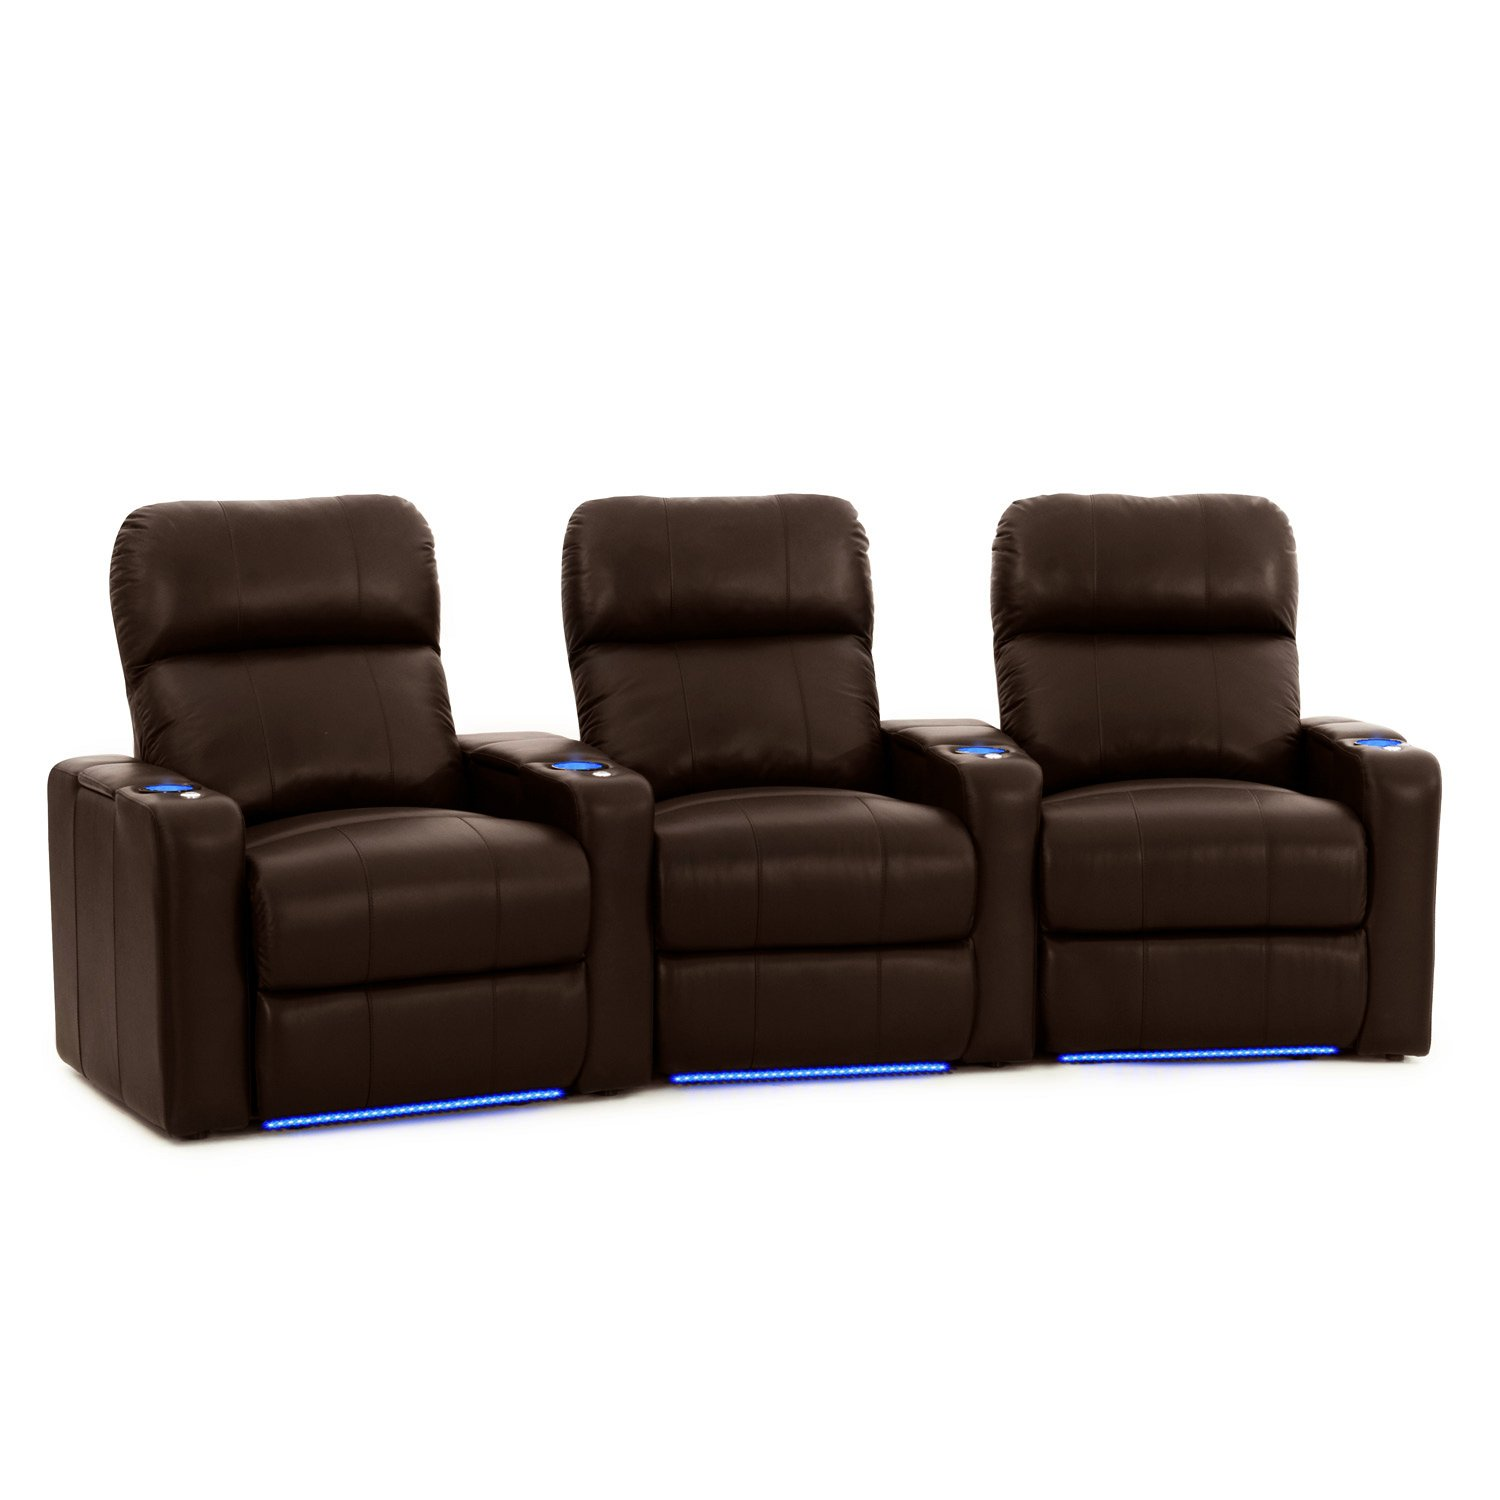 Home Furniture United Promotion Theater Sofa Electric Vip Cinema Lift Recliner Sofa Chair High Resilience Living Room Furniture